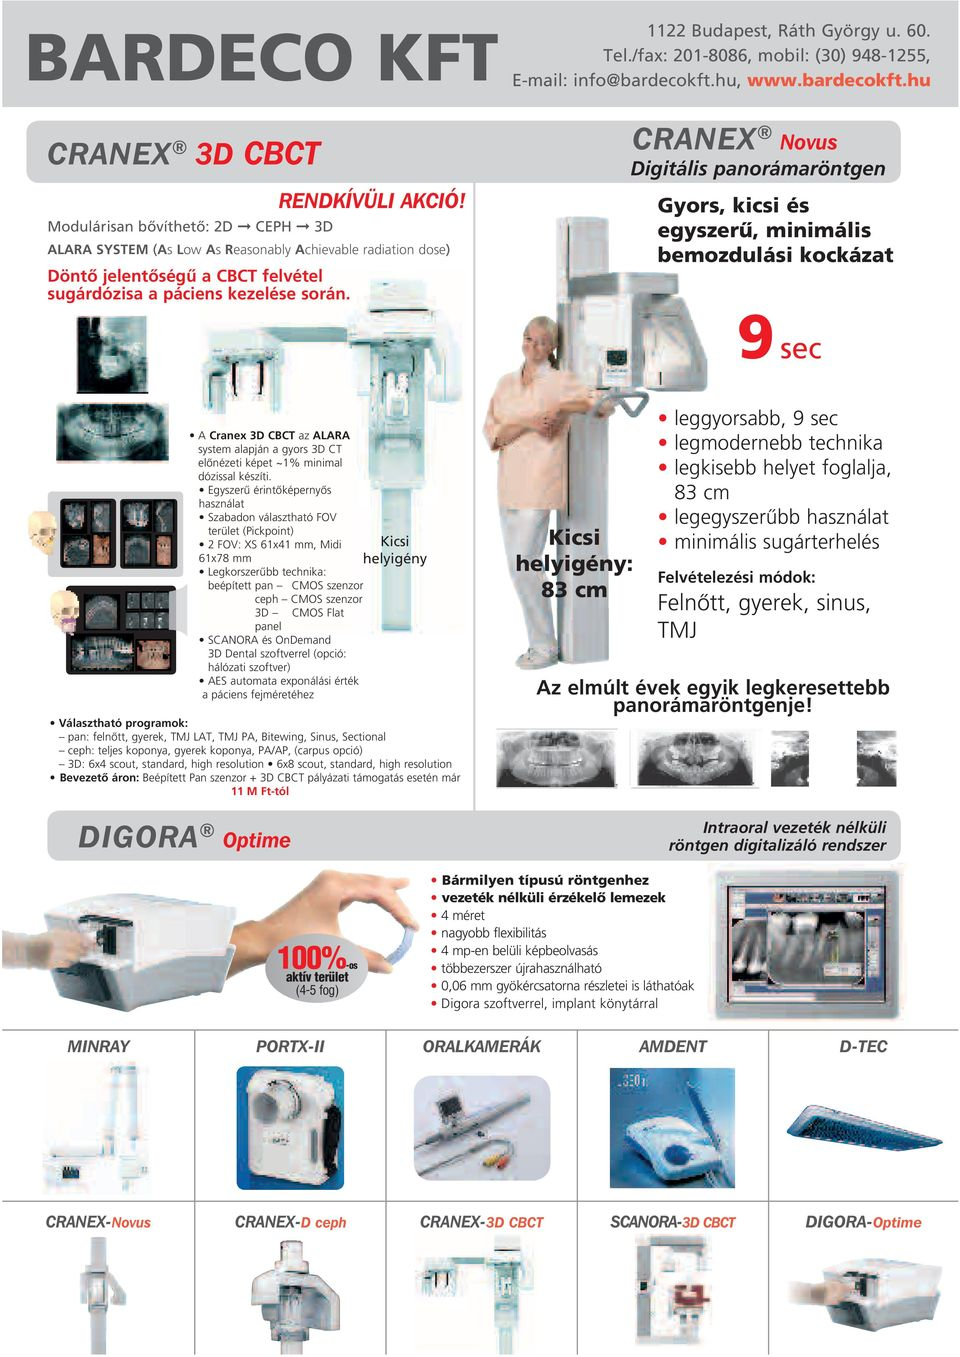 CRANEX Novus Digitális panorámaröntgen Gyors, kicsi és egyszerû, minimális bemozdulási kockázat 9 sec 3D programs for accurate treatment planning and diagnostics The CRANEX 3D provides dental clinics